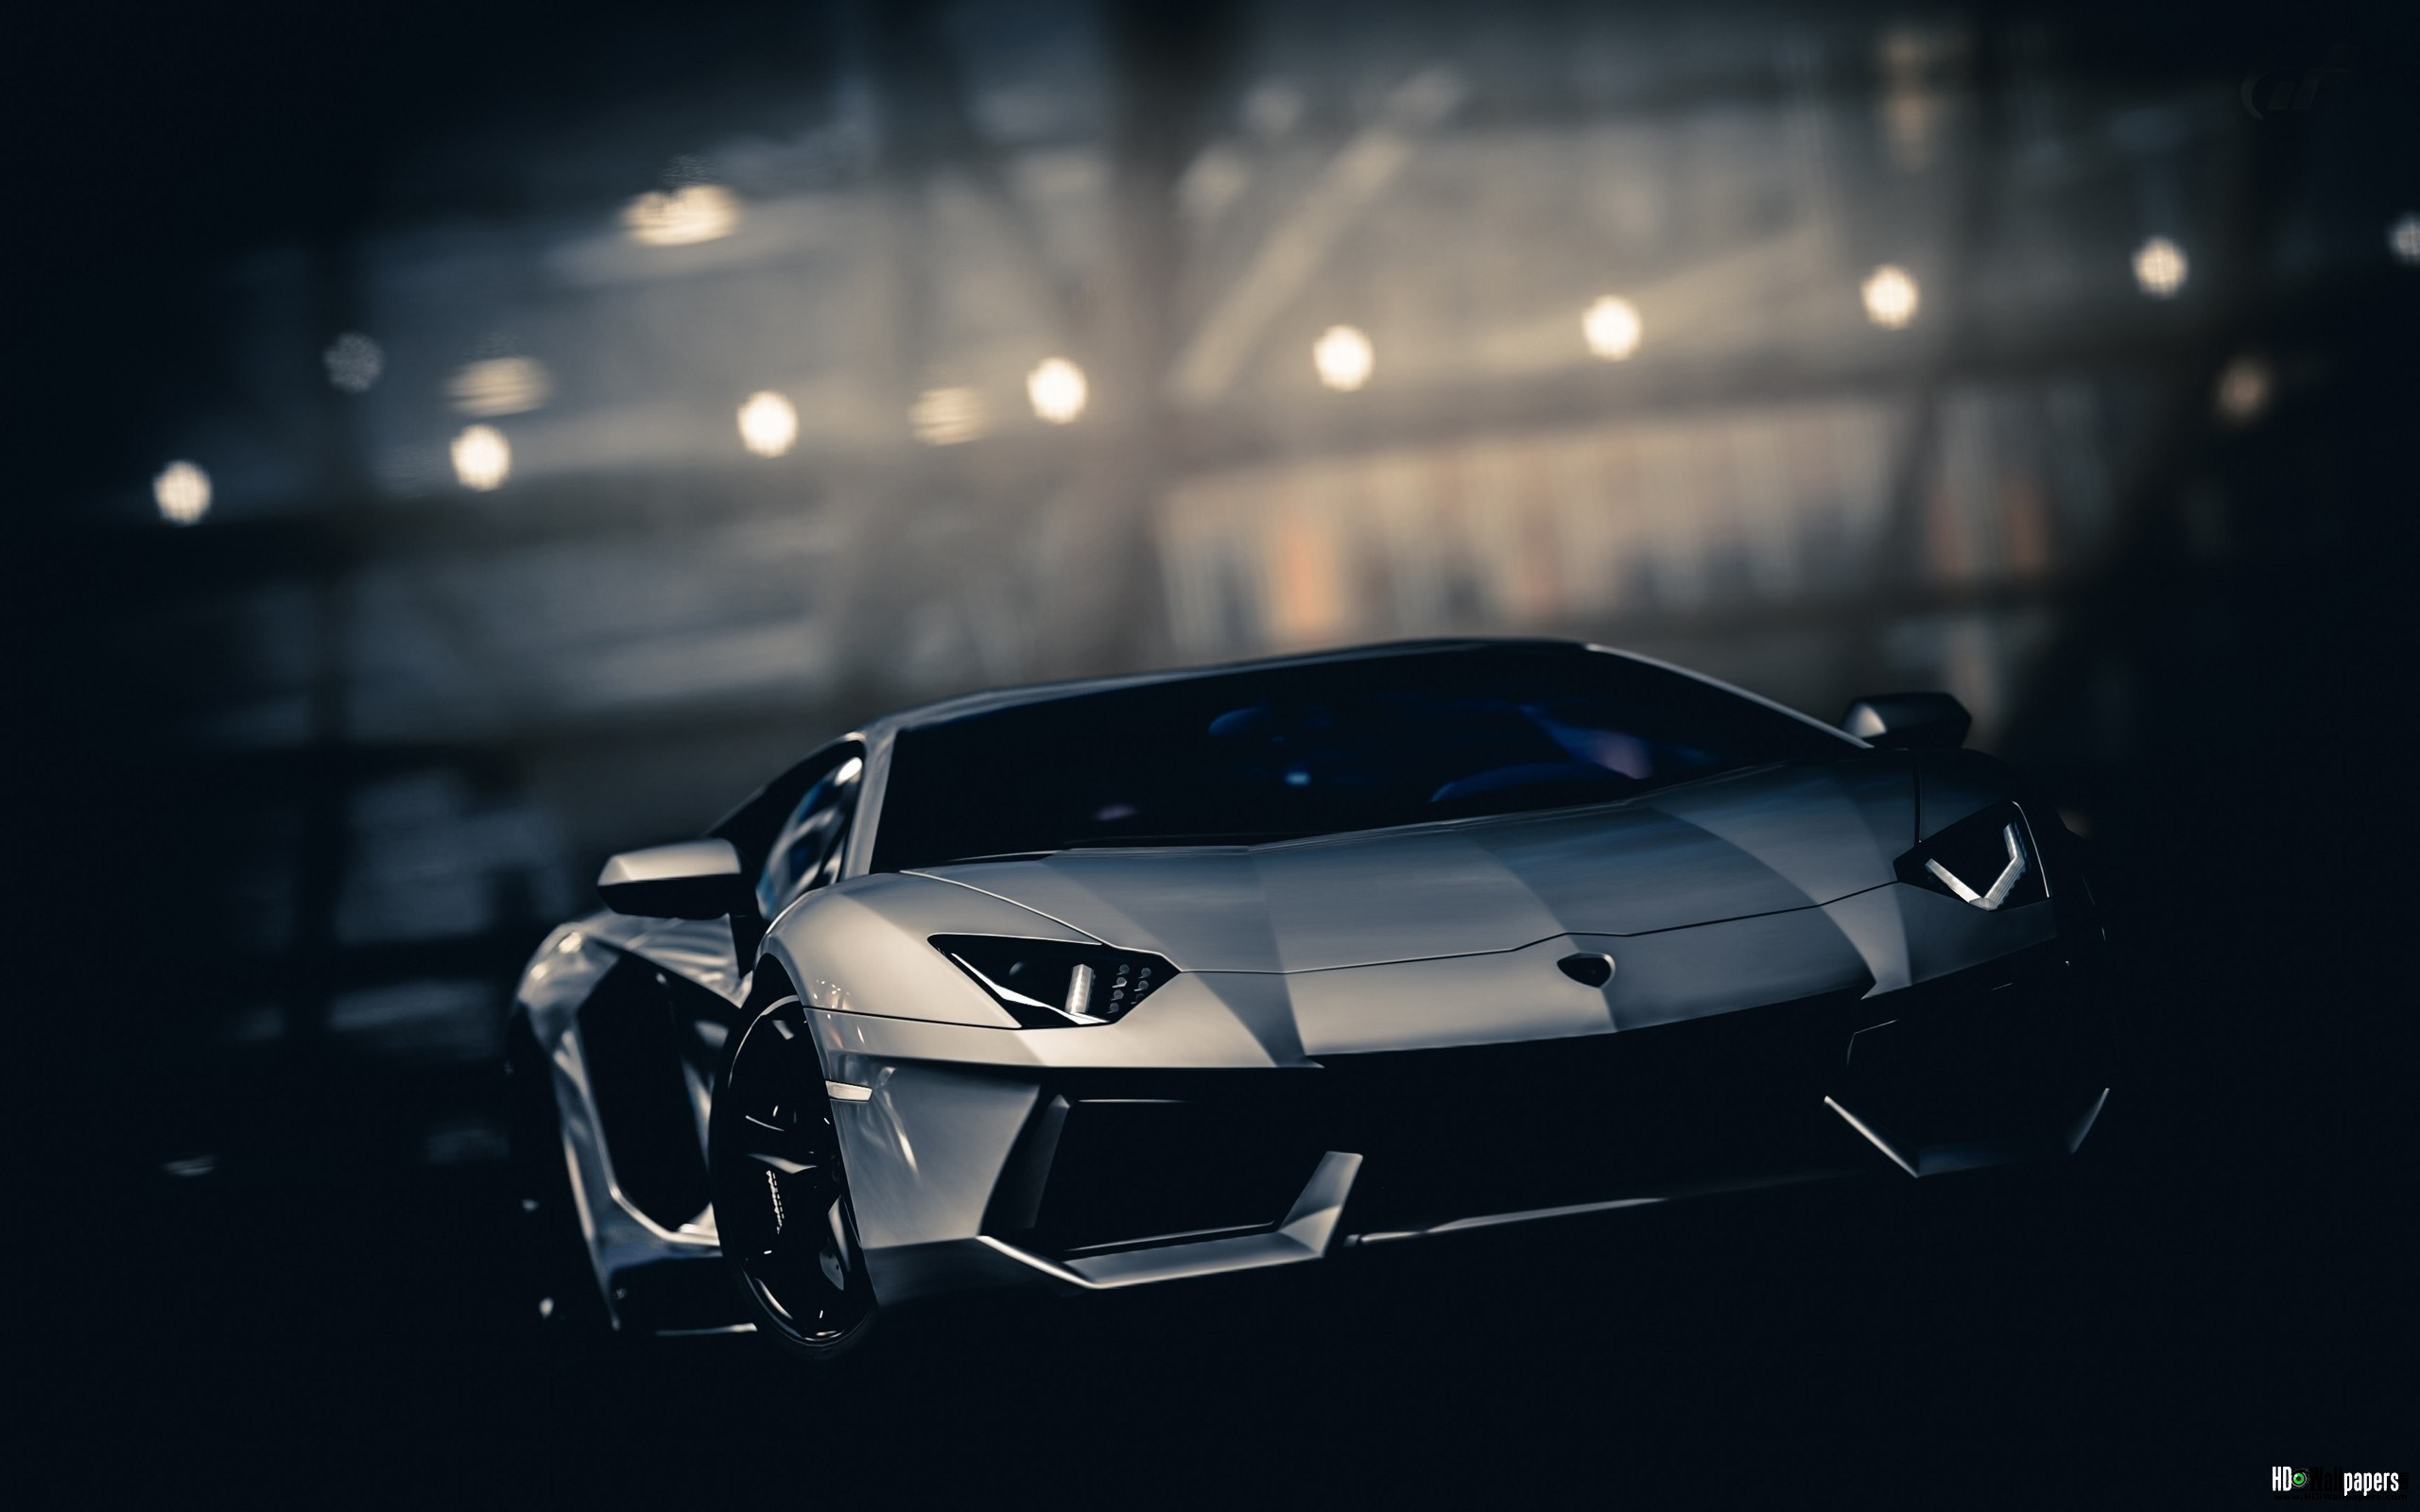 44 Hd Wallpapers Cars Free Download On Wallpapersafari